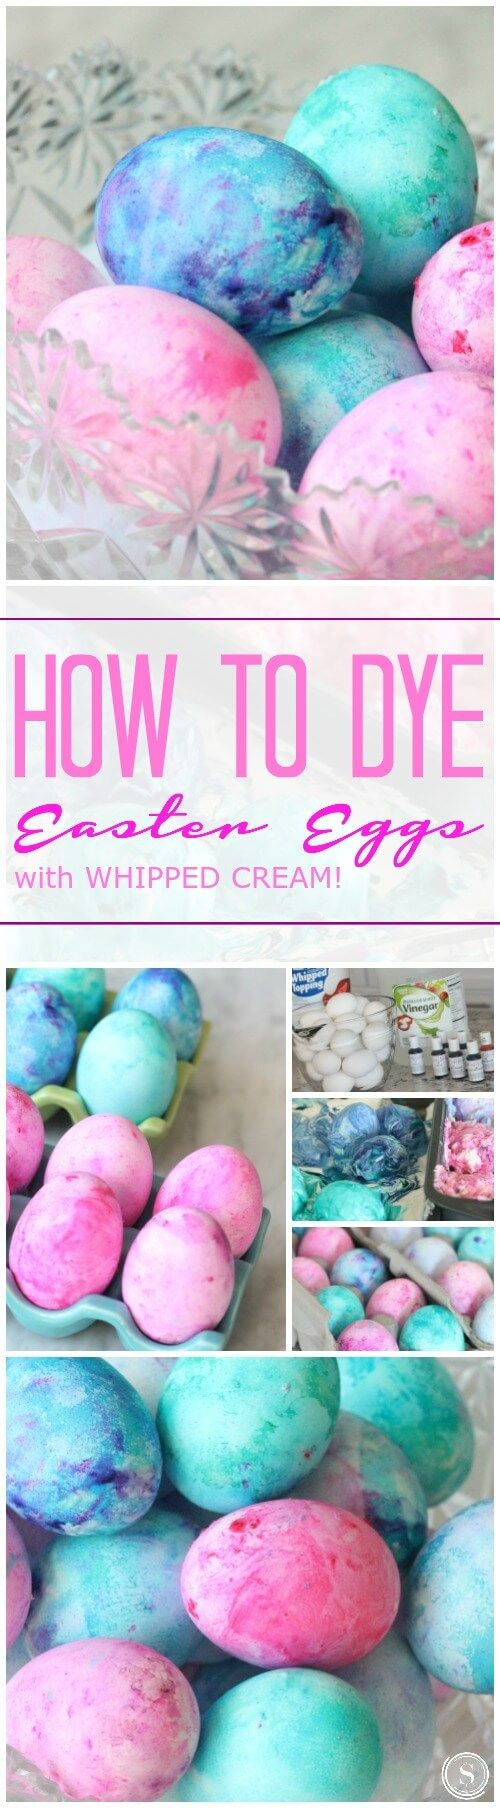 How To Dye Easter Eggs With Whipped Cream This Is A Great Easter Idea For